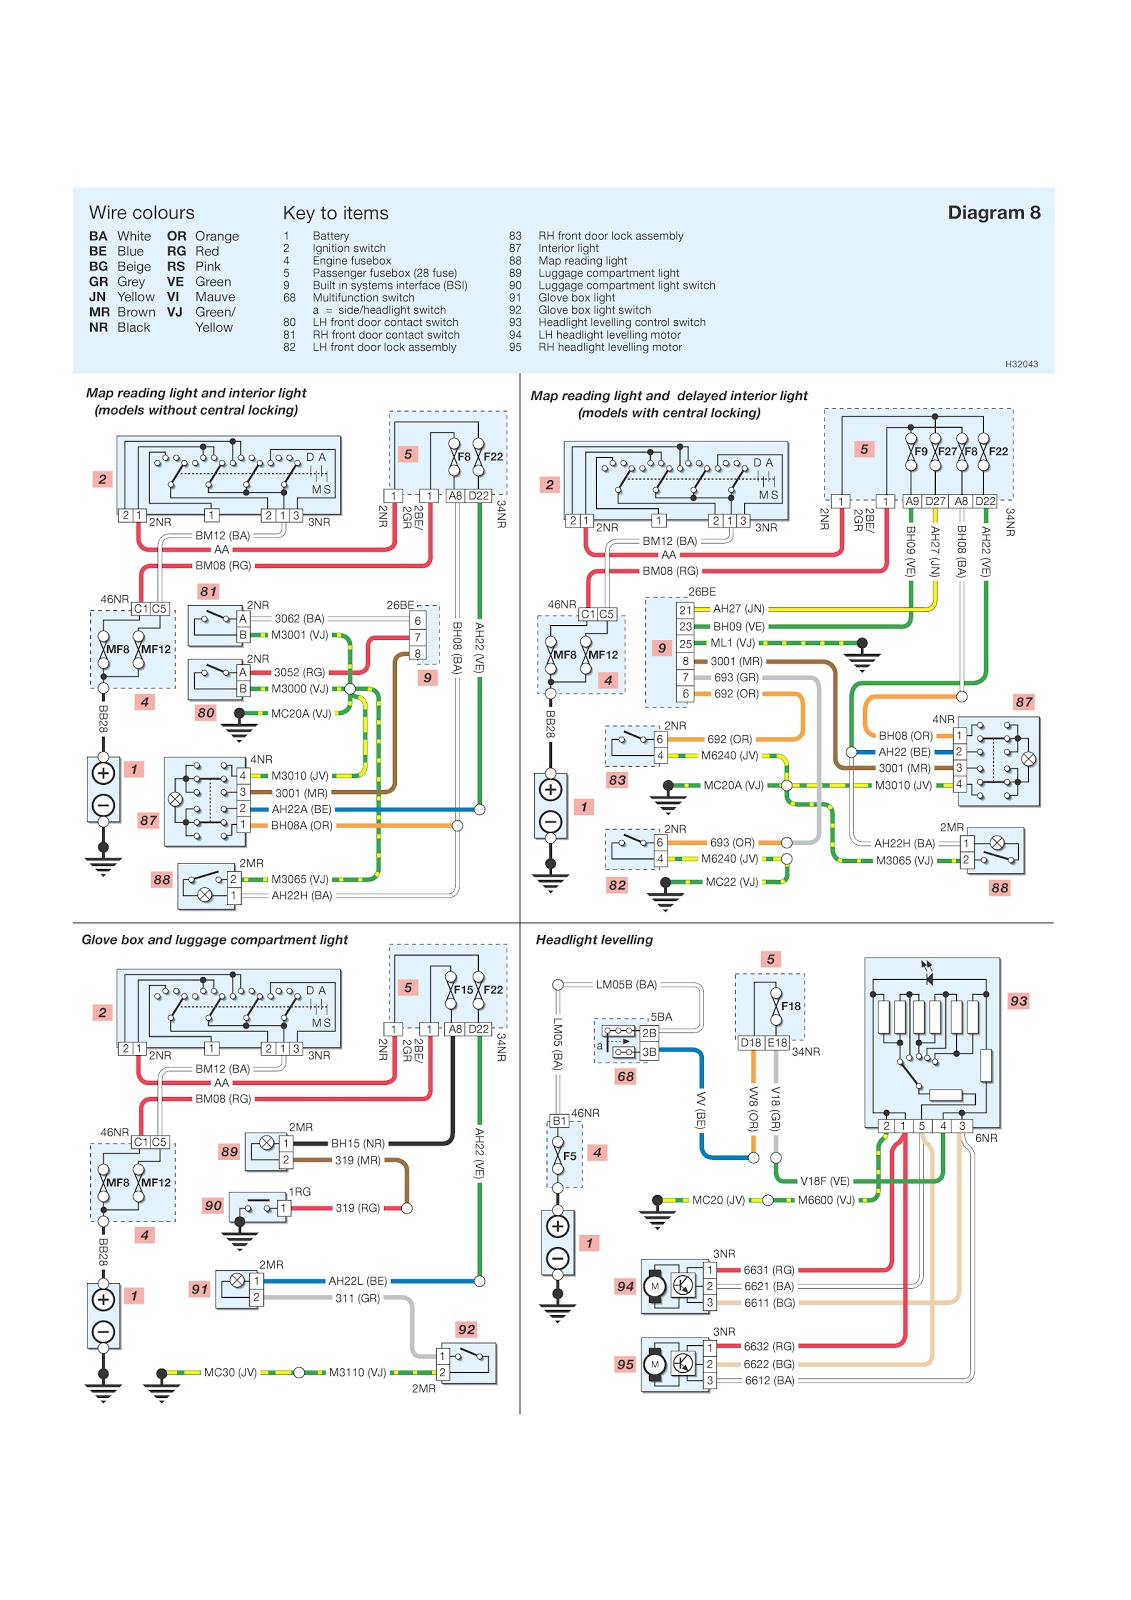 Audio Wiring Diagram Peugeot 307 - Wiring Solutions on 2000 chevy 3500 headlights, chevy 1500 wiring diagram, chevy fuel pump wiring diagram, 2002 chevy 2500 wiring diagram, 2000 chevy 3500 dimensions, chevy truck wiring diagram, chevy blazer wiring diagram, 2007 chevy 2500 wiring diagram, 2000 chevy 3500 engine, 2000 chevy 3500 fuel tank, 2000 chevy 3500 seats, 2000 chevy 3500 door, chevrolet wiring diagram, 2000 chevy 3500 parts, 2003 chevy 2500 wiring diagram, 2002 chevy express wiring diagram,